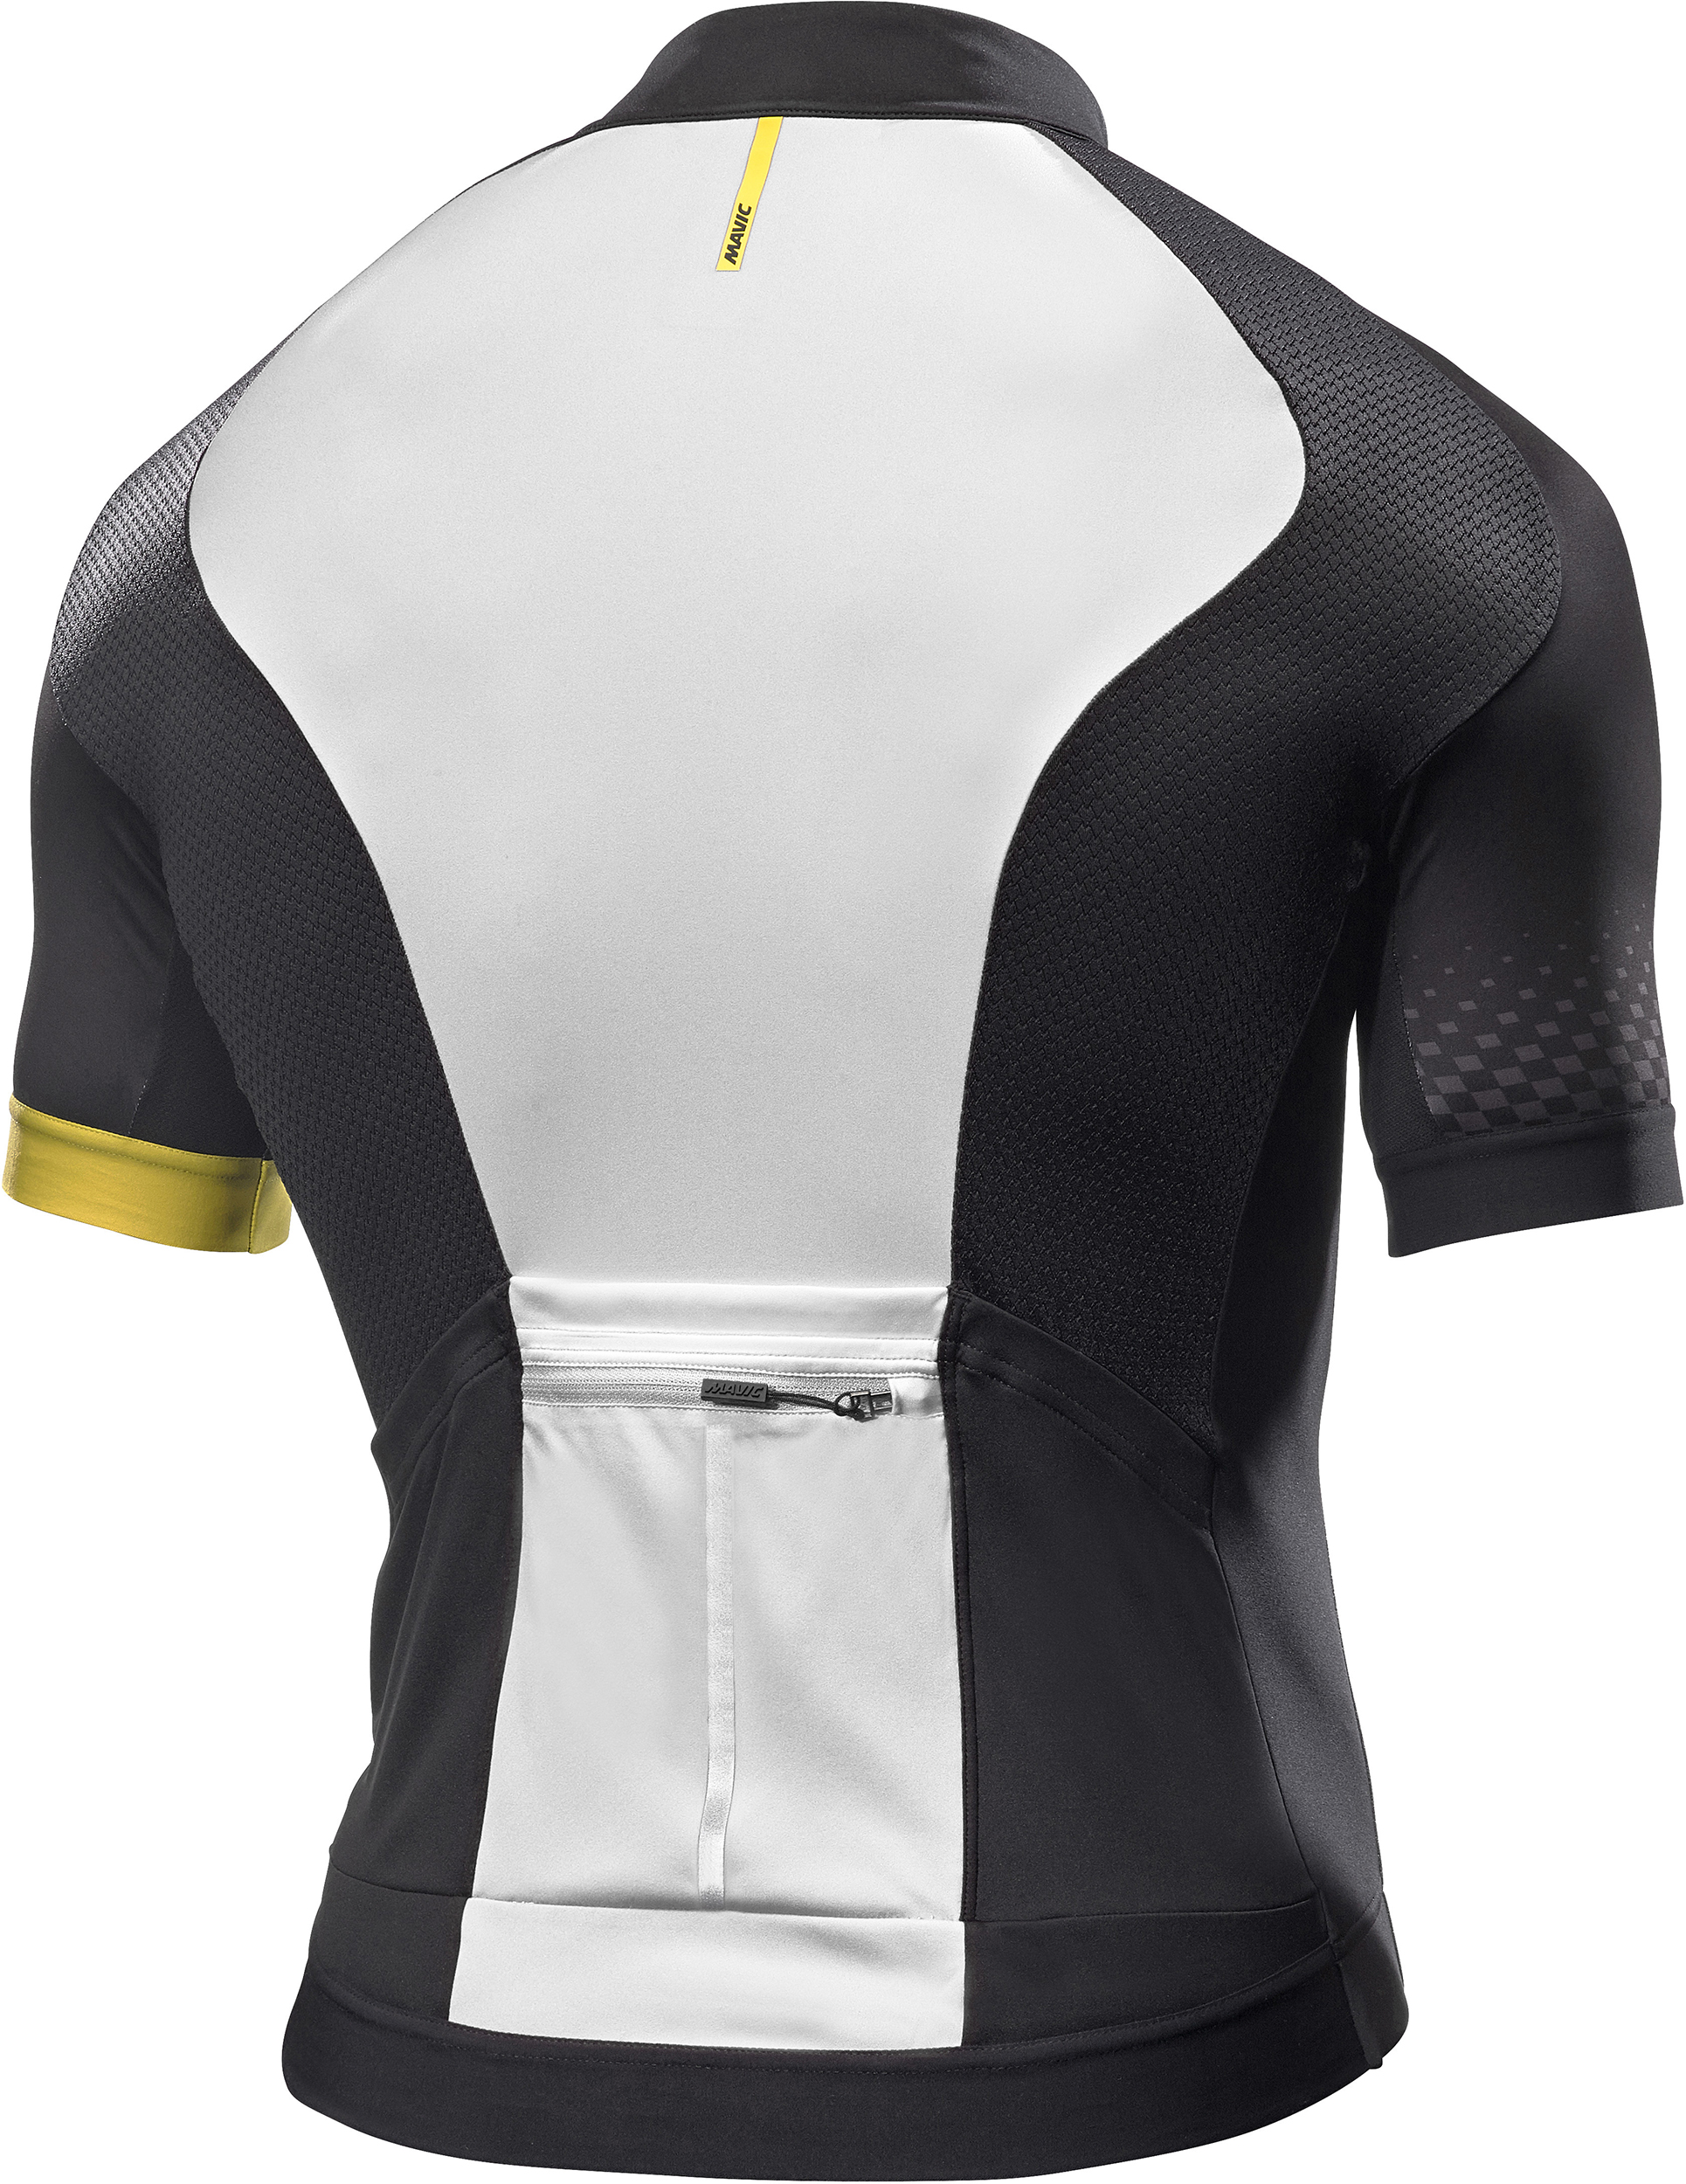 01f9bf124 Mavic Cosmic Elite Jersey - Men s